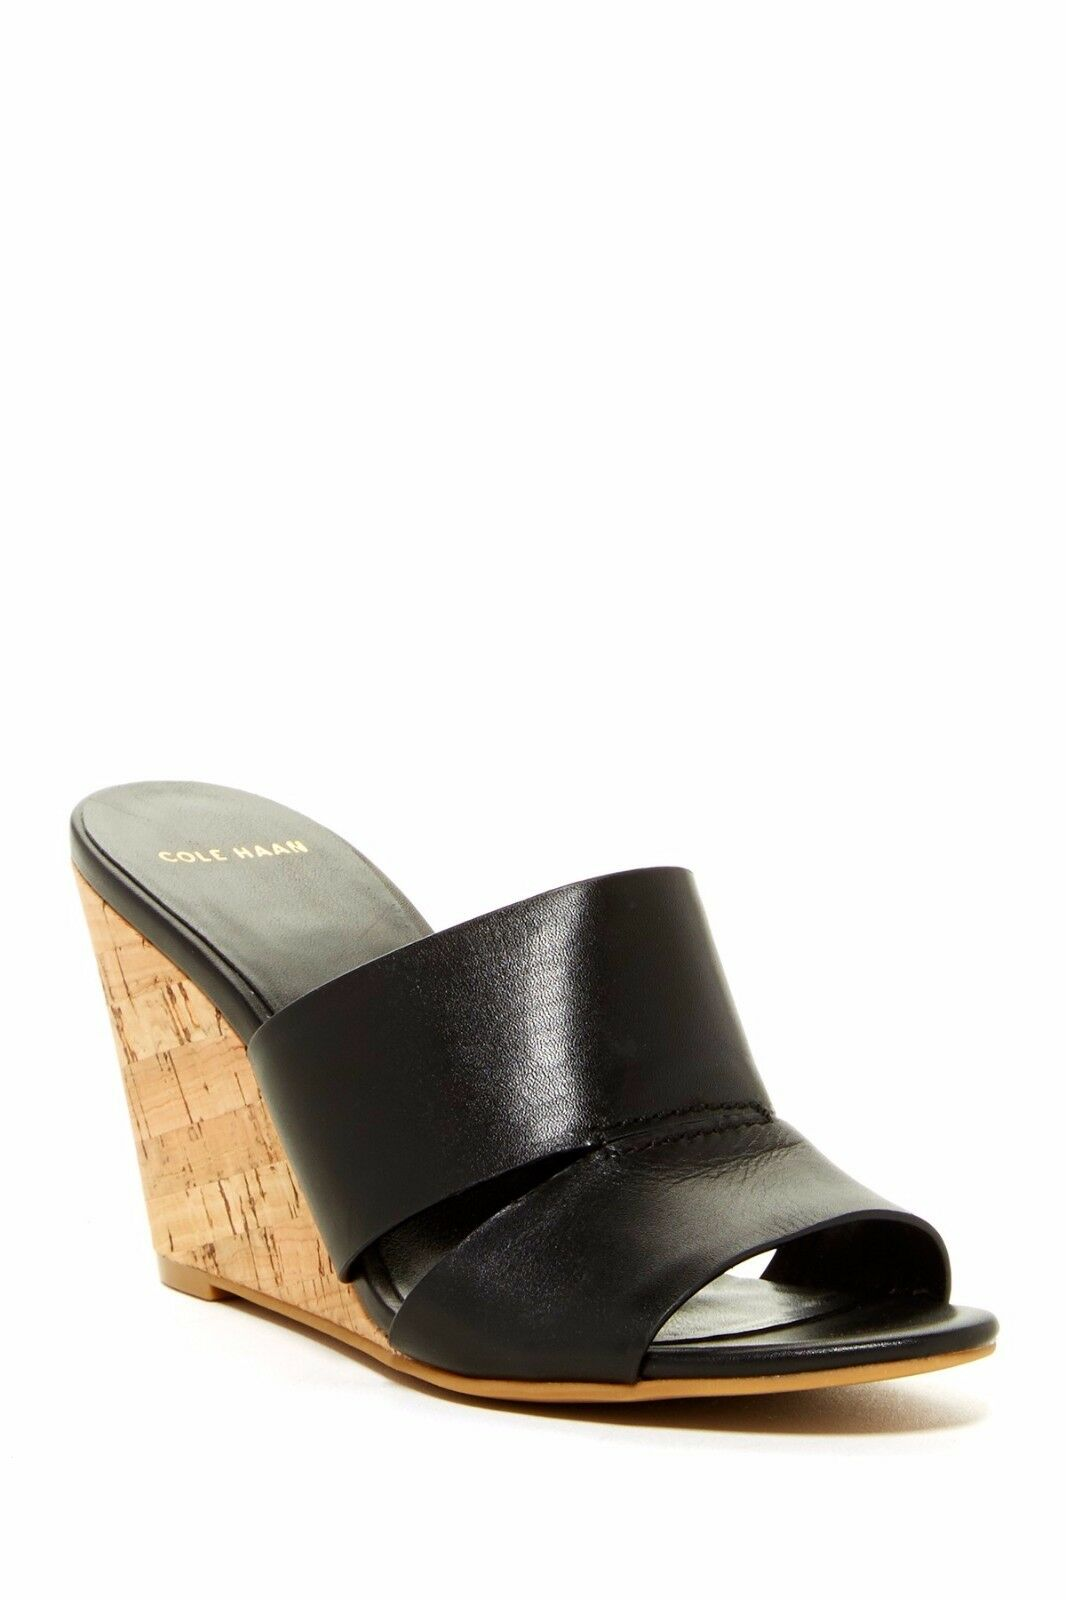 New Cole Haan Acoma Wedge II Sandals women's size 9.5